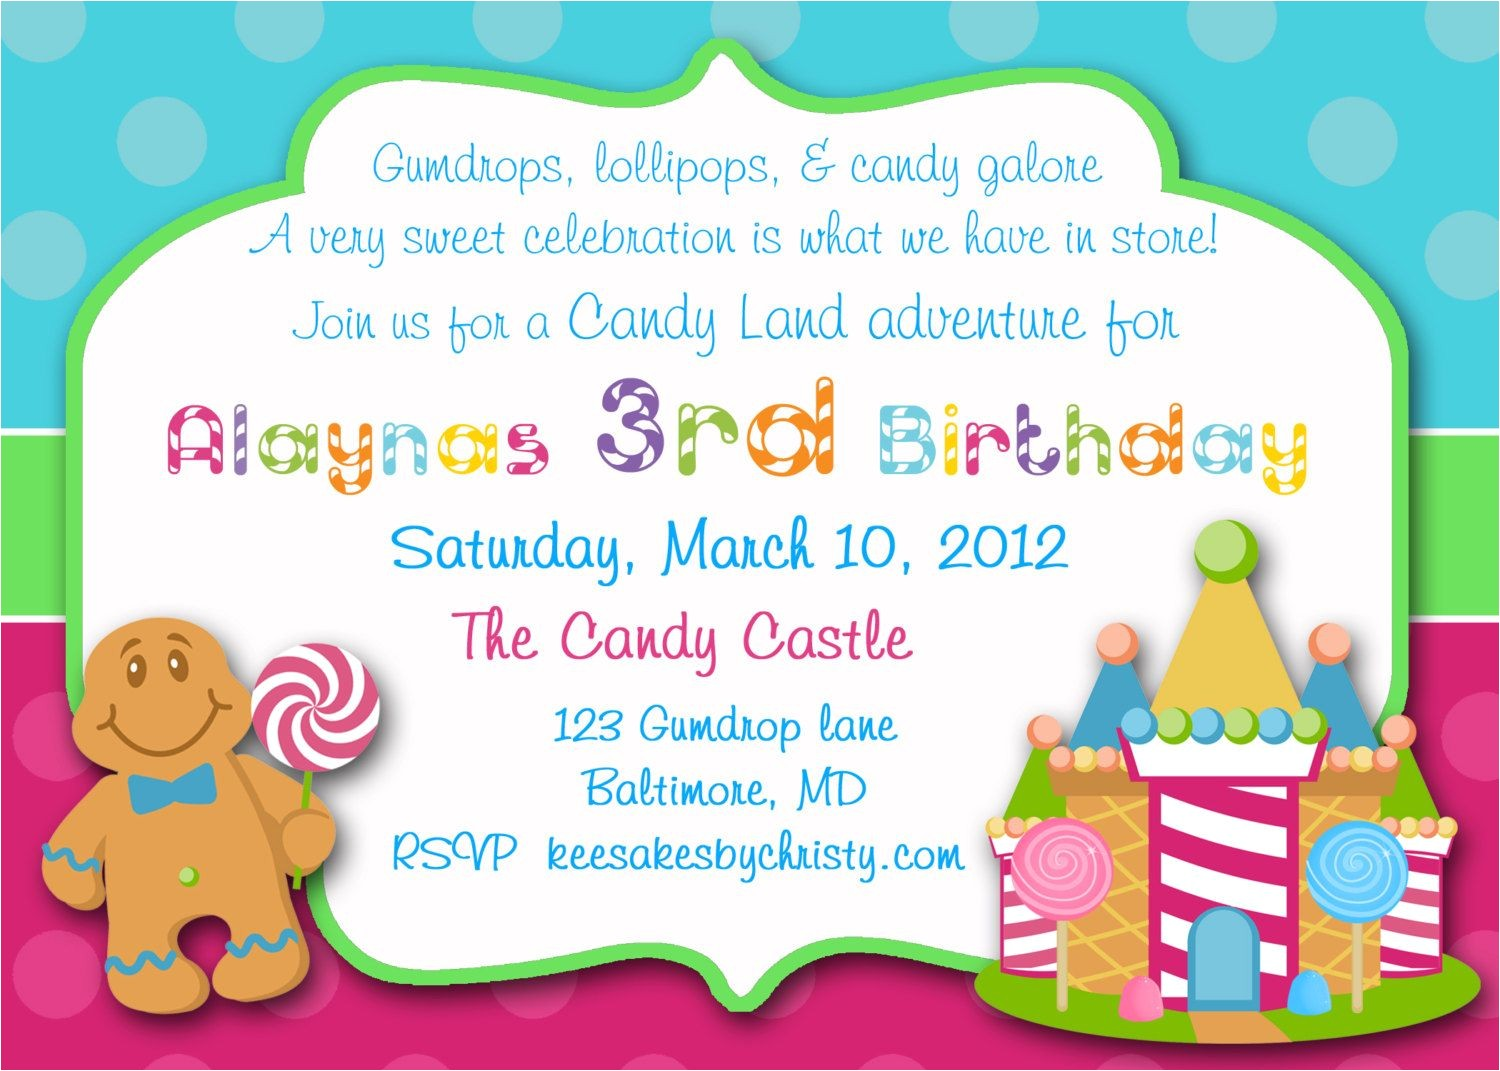 Candyland Birthday Invitation Wording Candyland Invitations Sweet Shop Invitations Sweet Shop